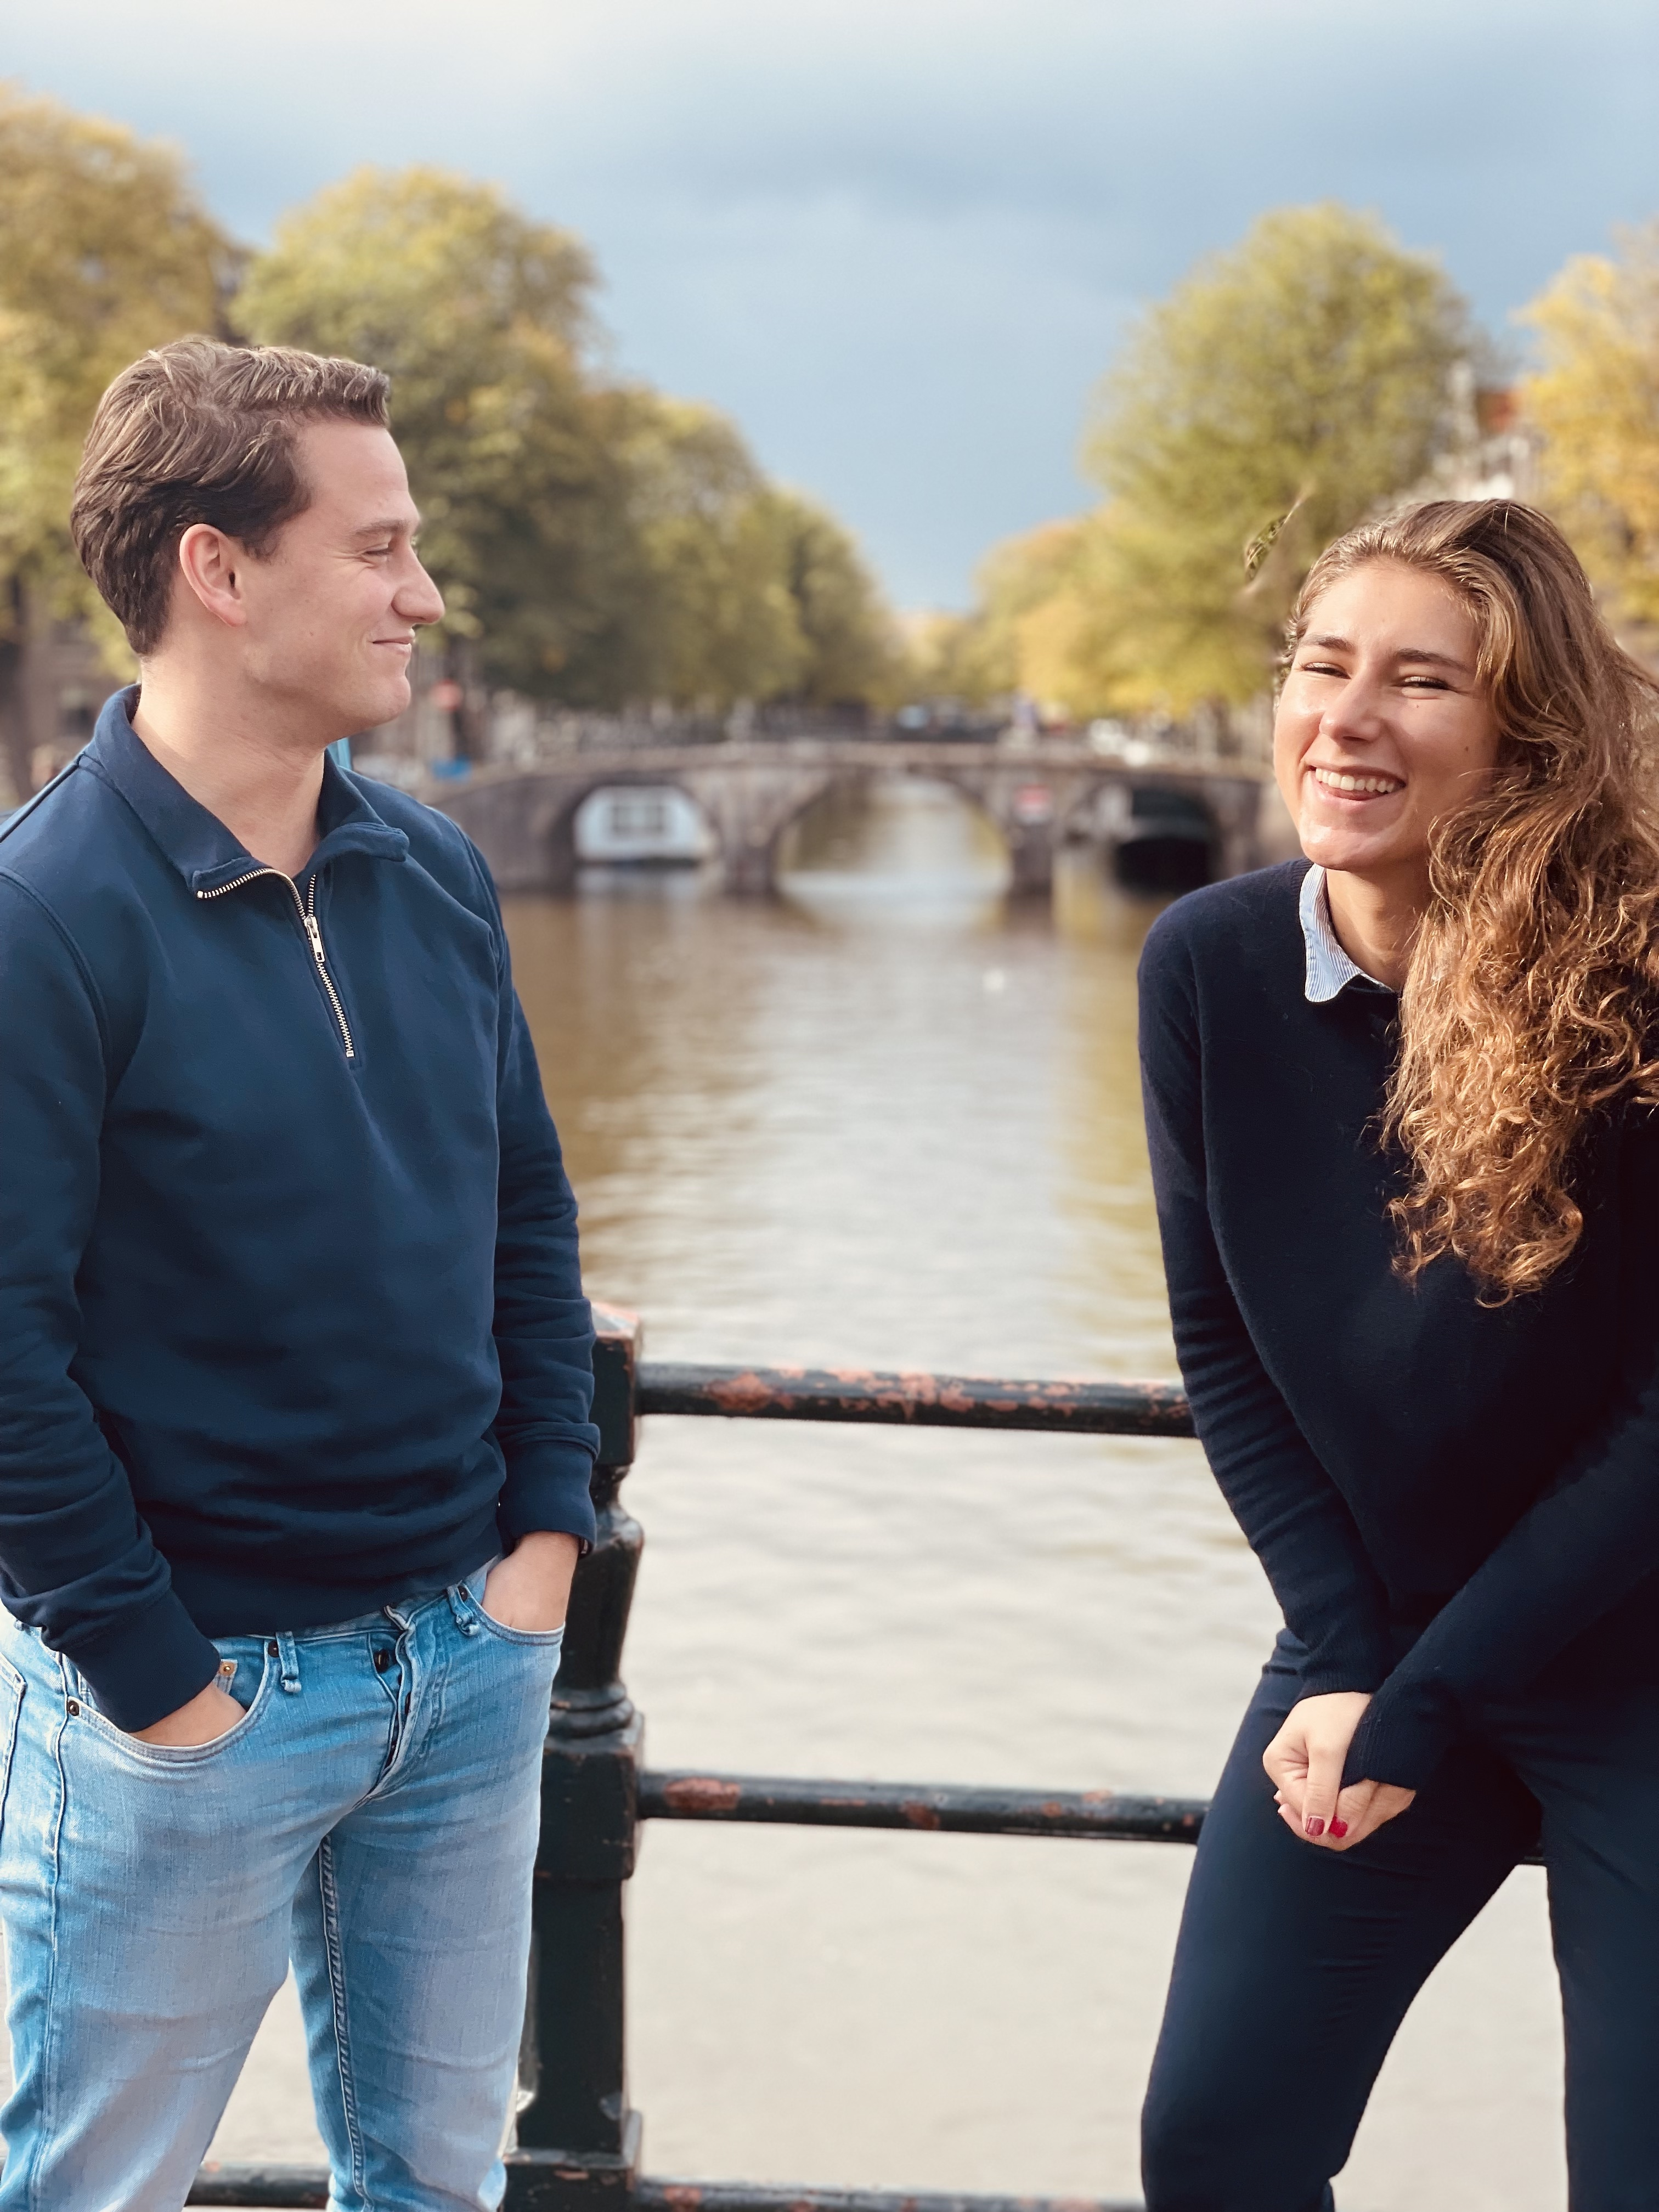 Meet Louisa and Tom: teaming up with us as interns